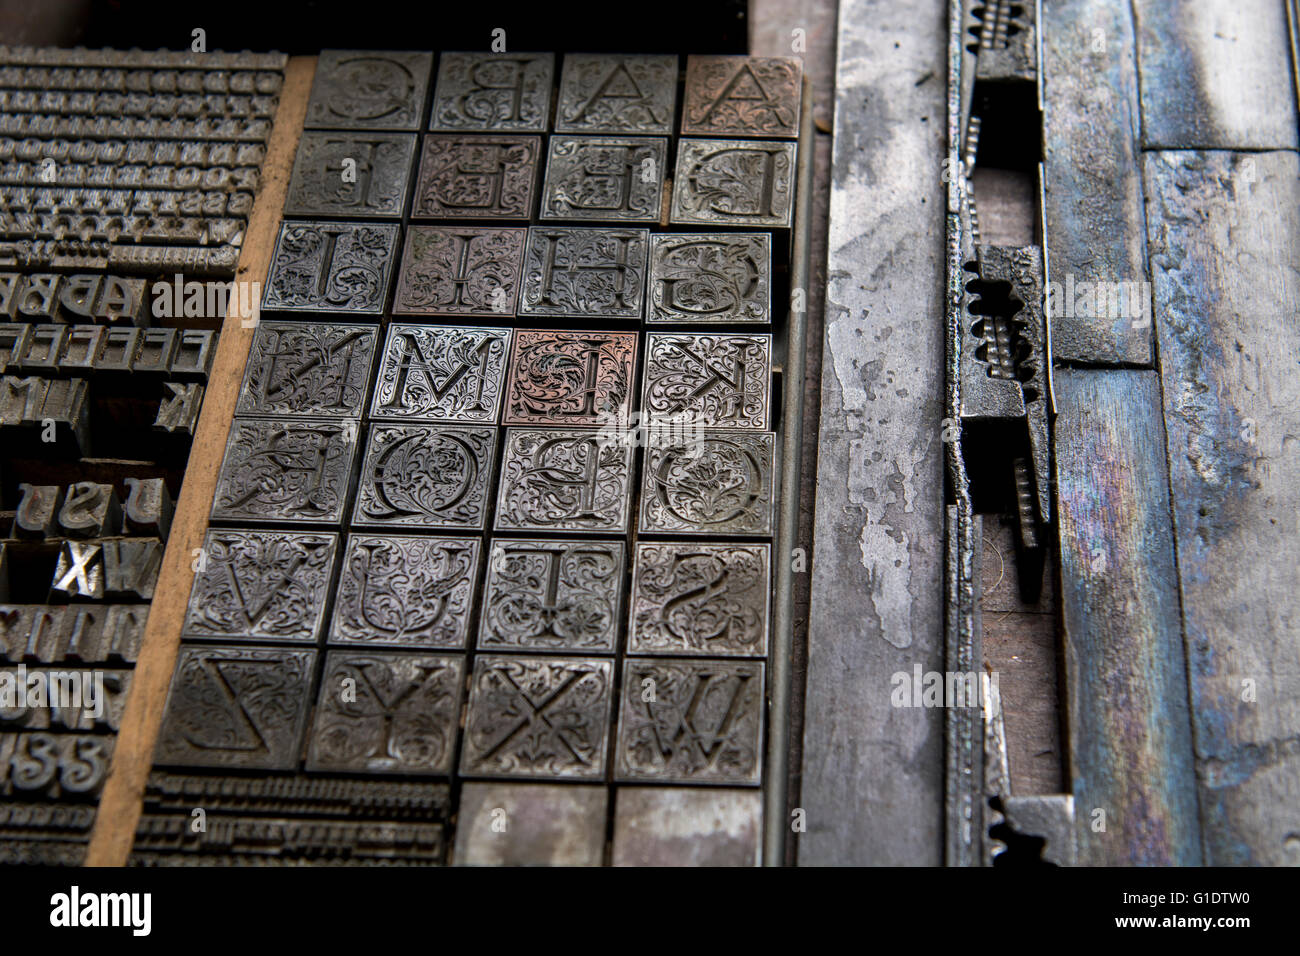 New York, Cooperstown, Farmer's Museum. Antique typeset letters. - Stock Image